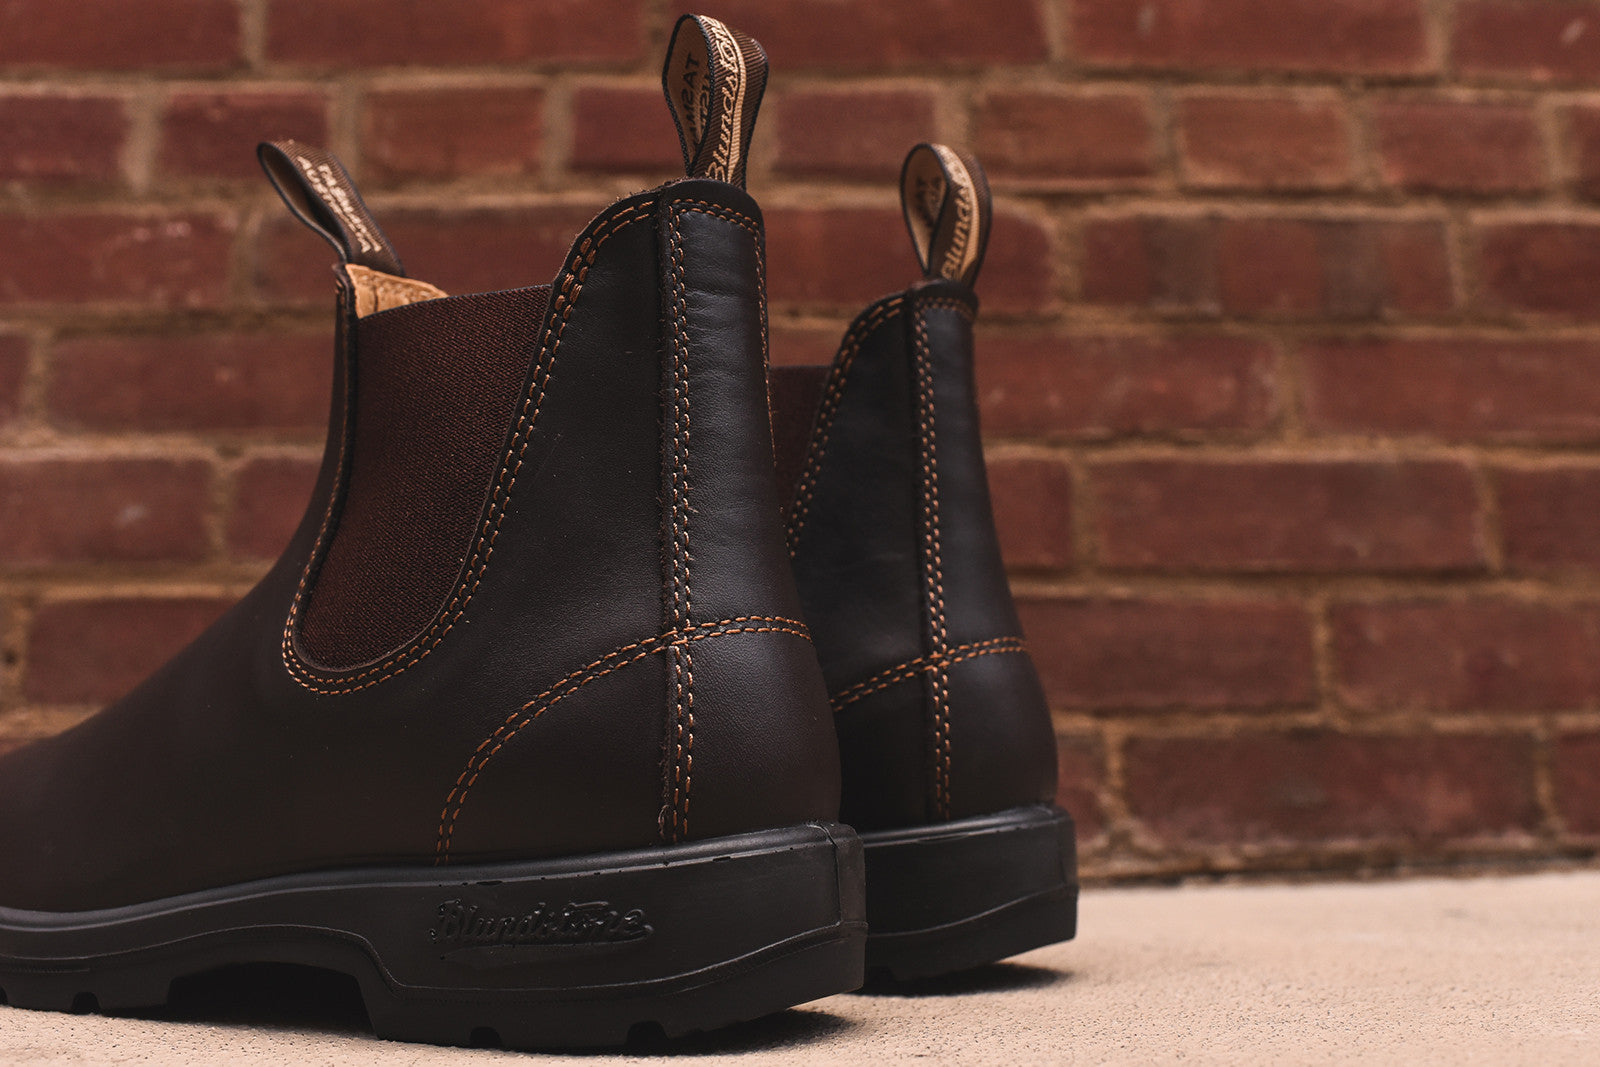 Blundstone 550 Boot - Walnut